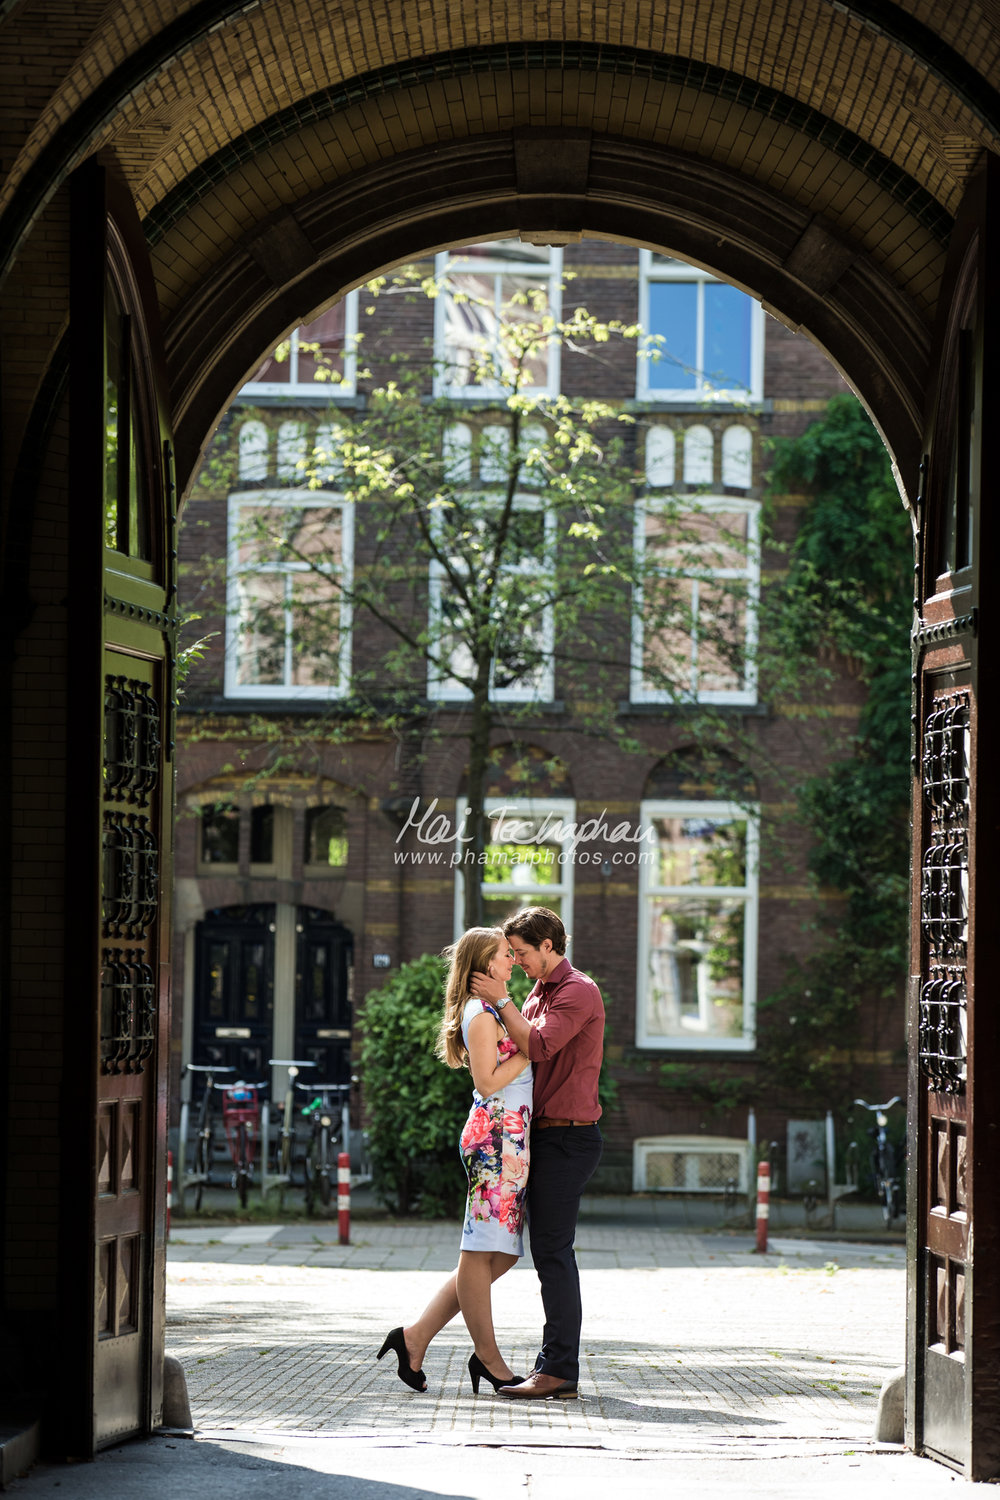 Dax-Sophie-Holland-Pre-Wedding-12.jpg